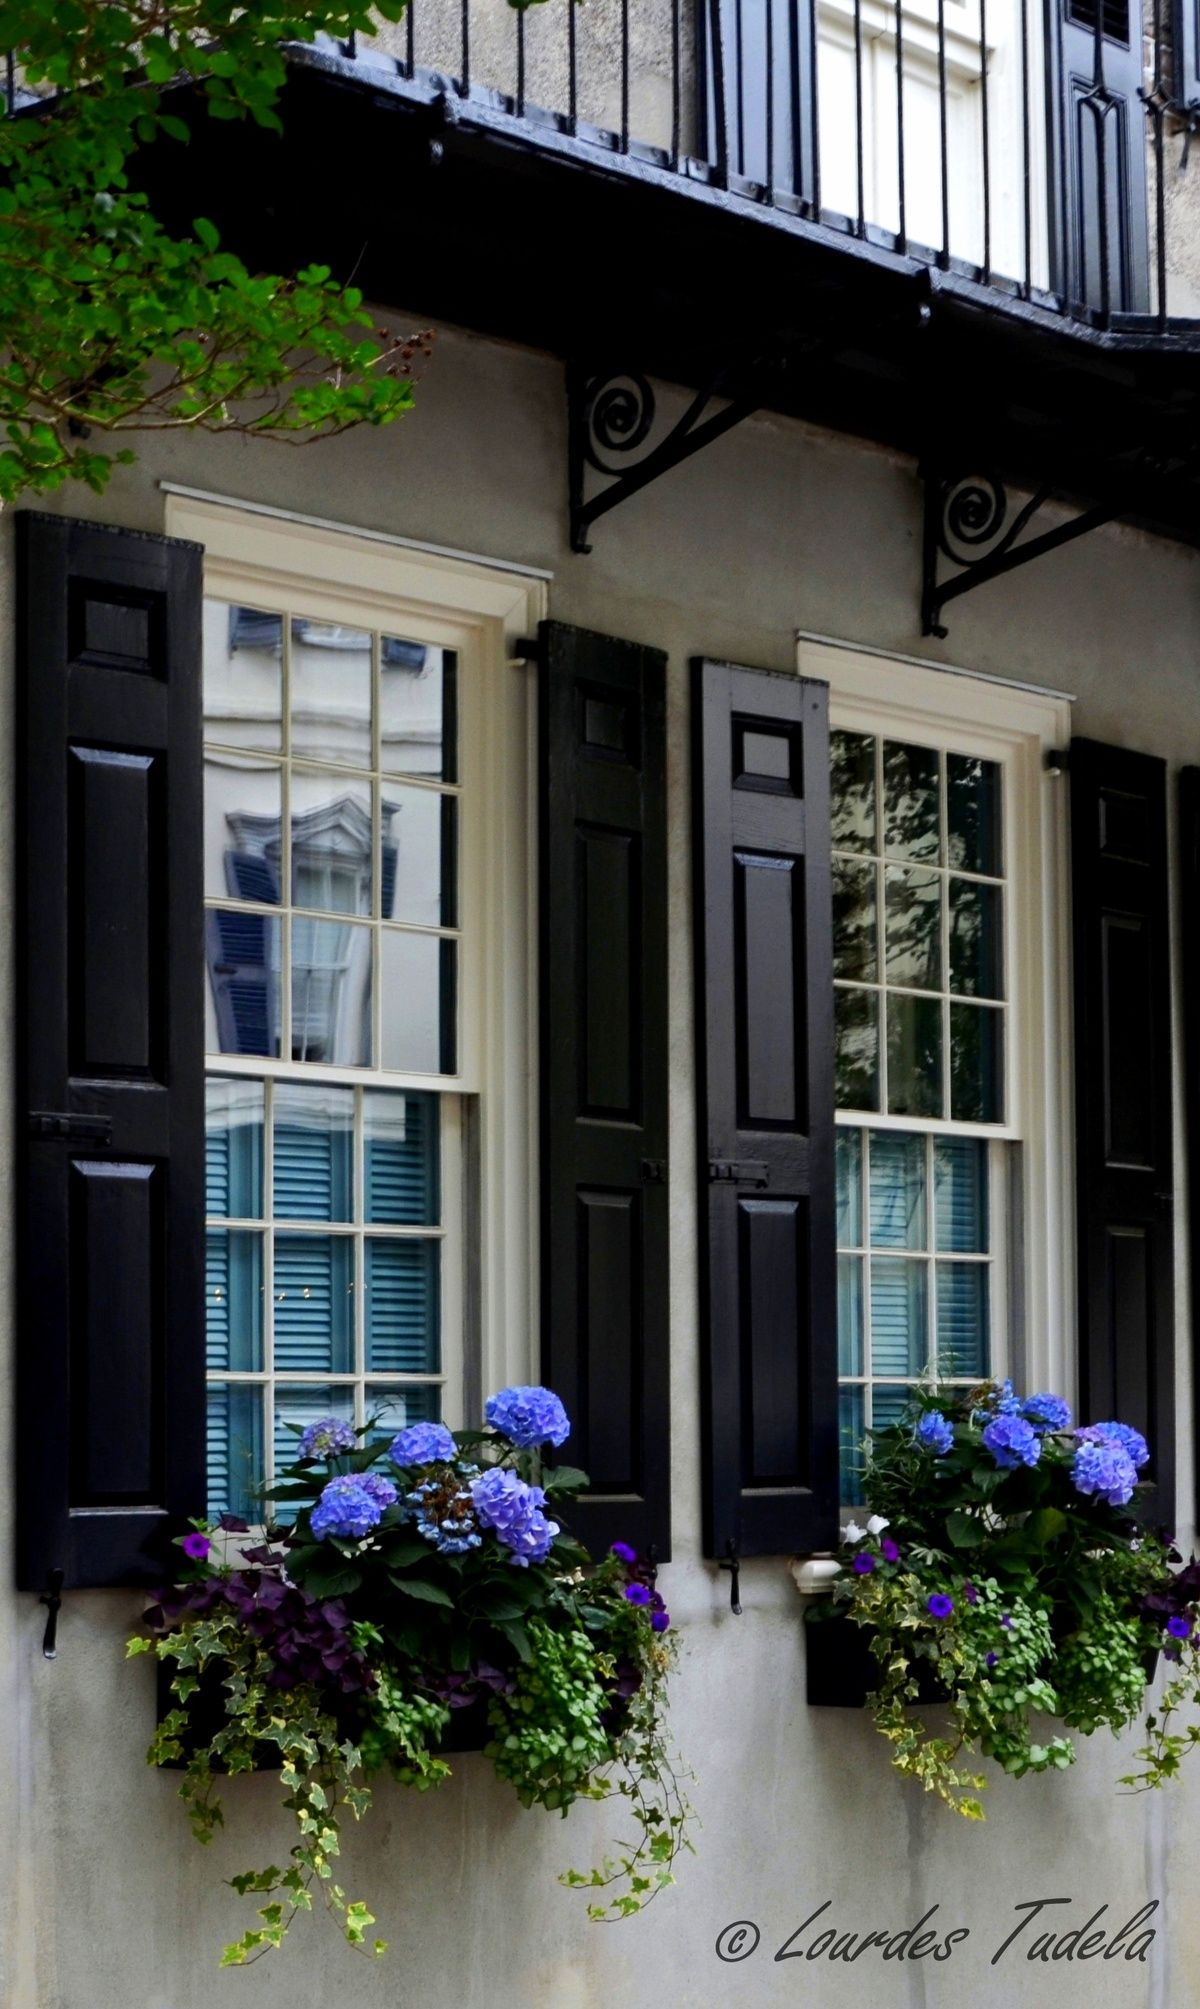 Black shutters and flower boxes etty